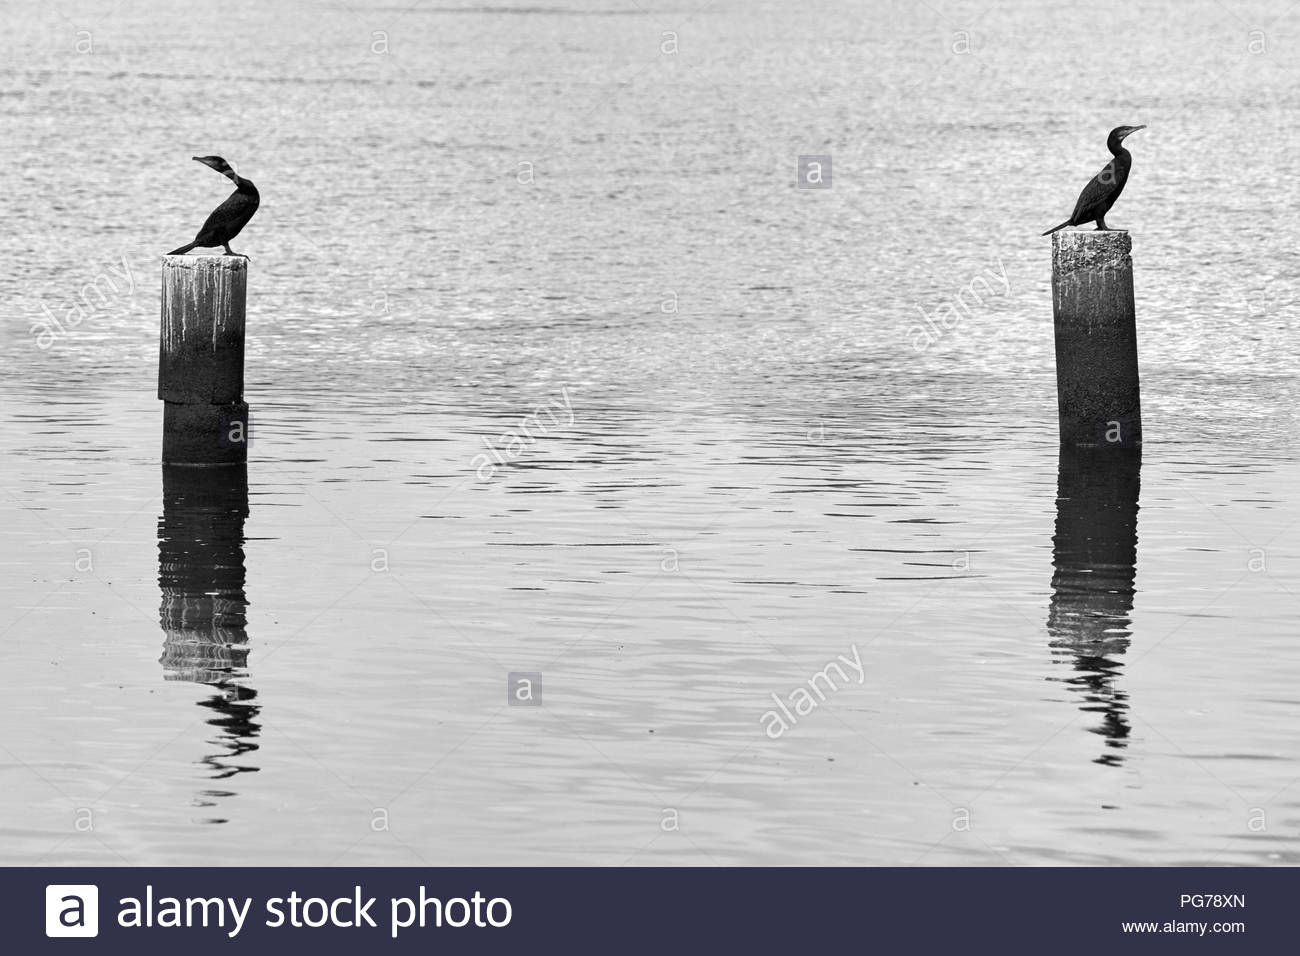 B/W image of Little Black Cormorants(Phalacrocorax sulcirostris), perched atop large wooden posts, in the Clarence River at Lawrence, NSW, Australia. - Stock Image